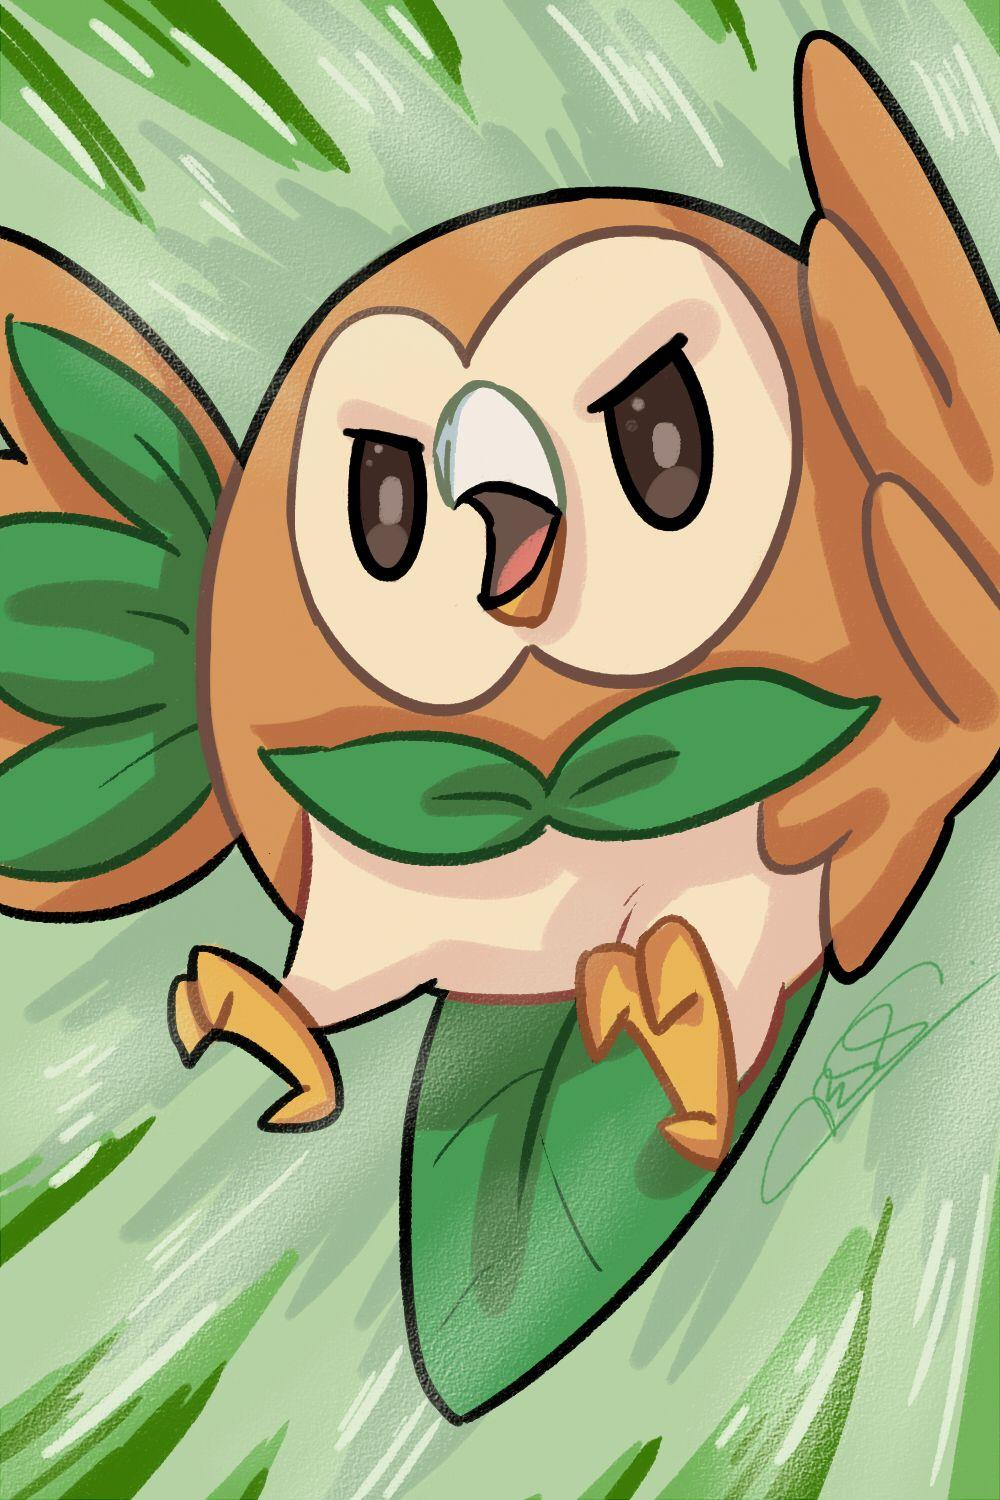 POKEMON - Rowlet by taitsujin on DeviantArt